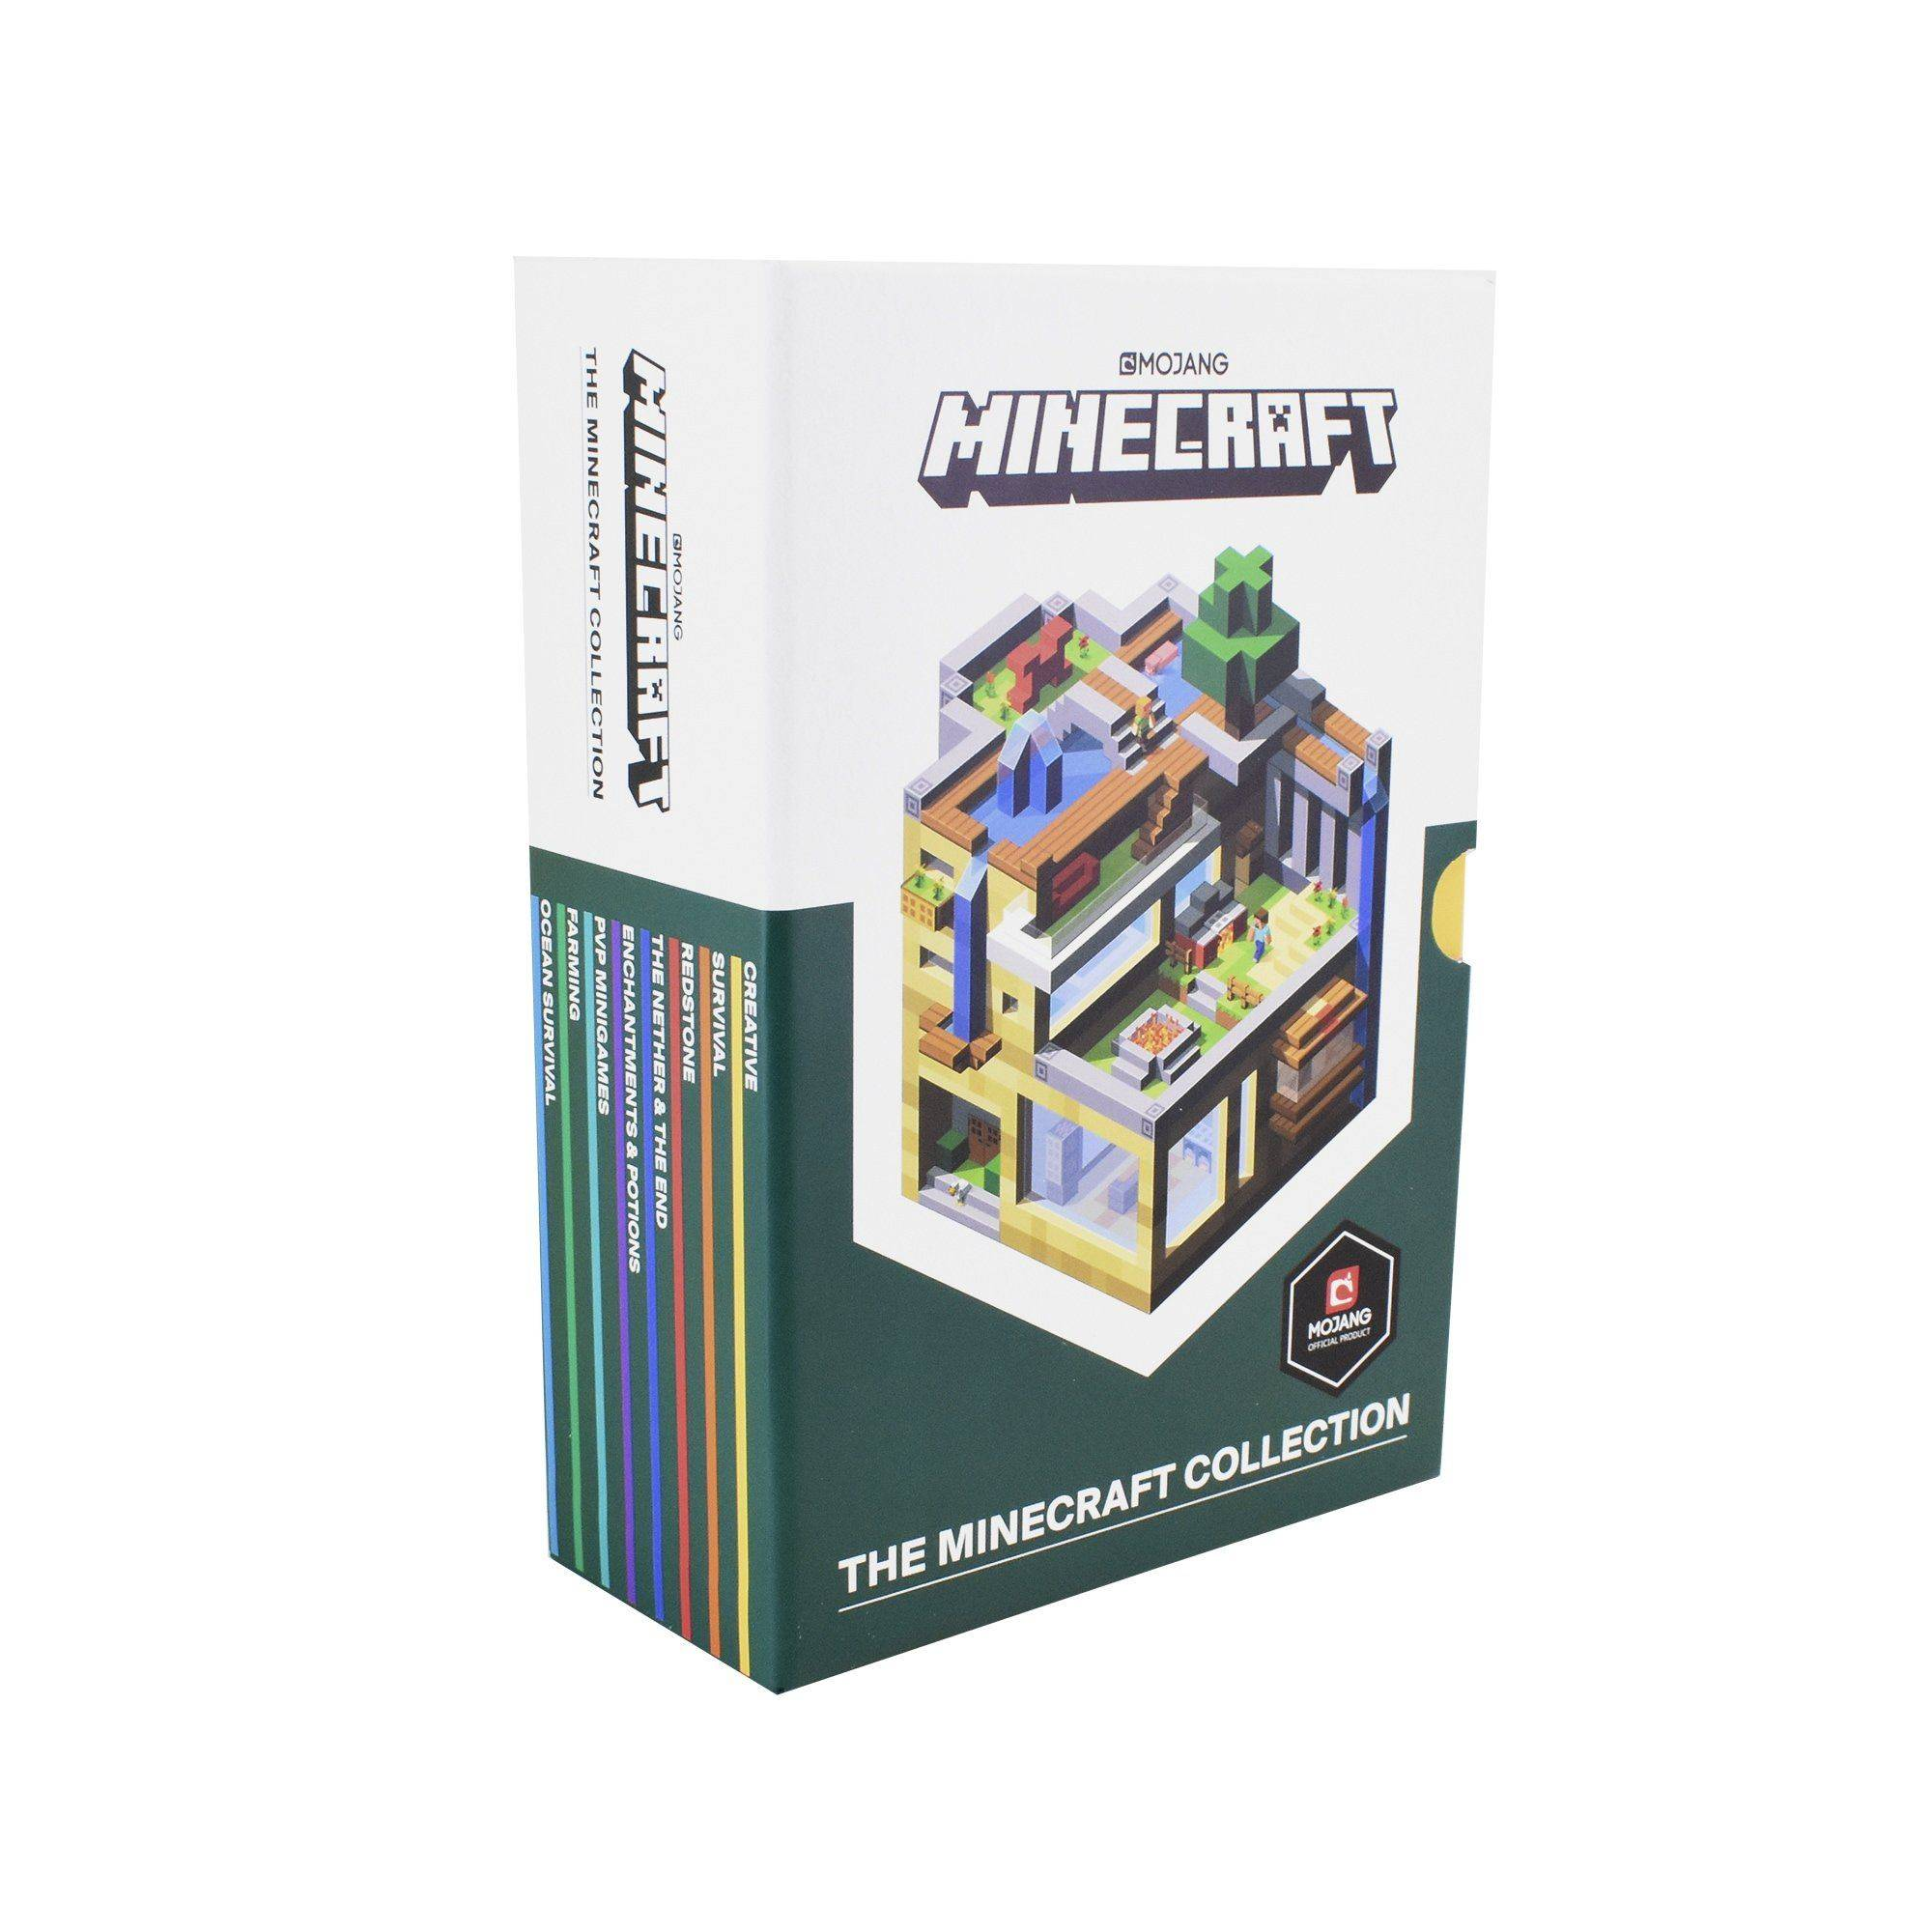 Dean Minecraft Guides Collection 8 Books Set By Mojang AB - Ages 5-7 – Paperback